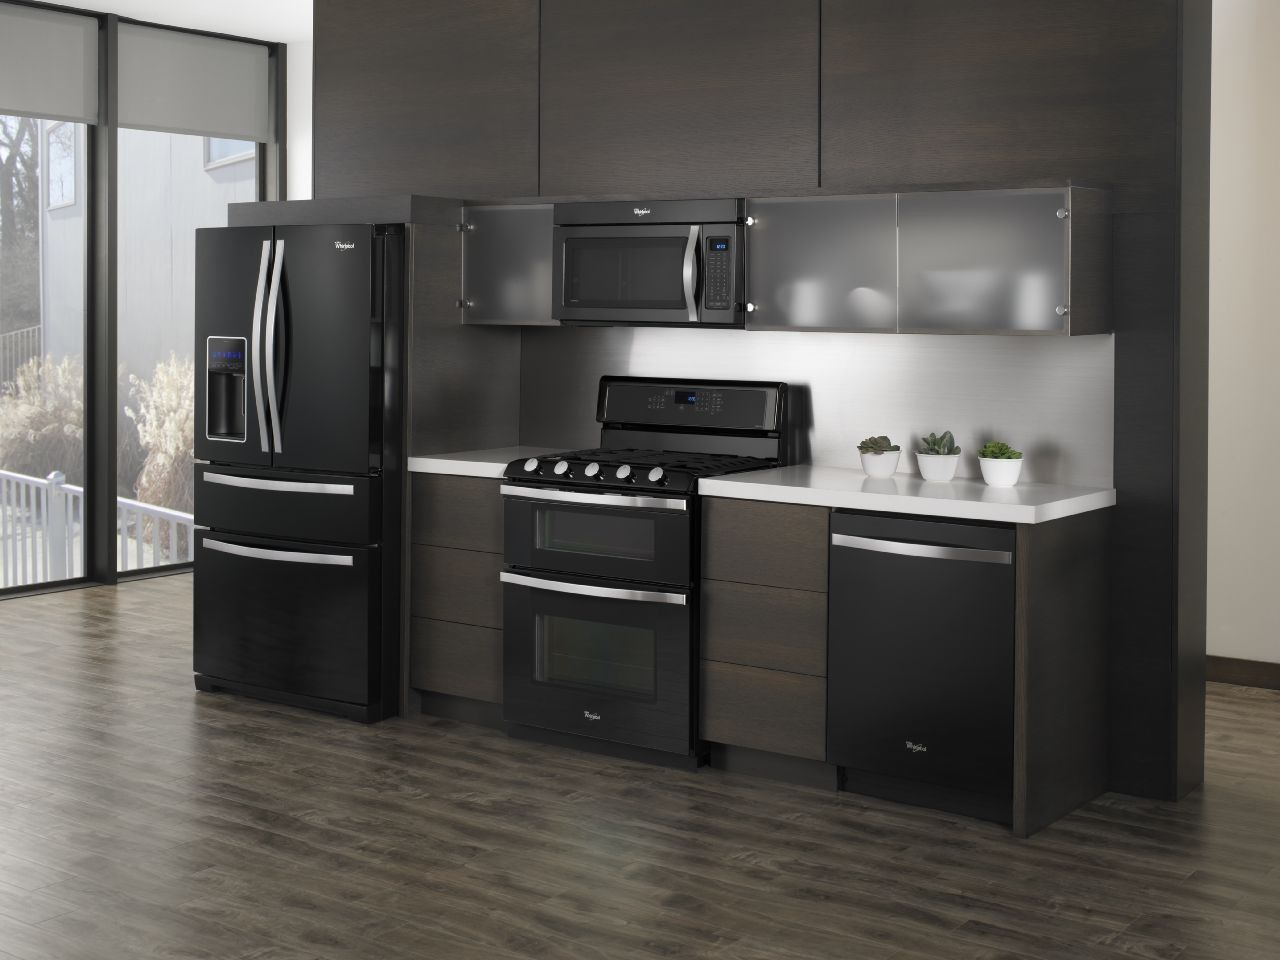 The WhirlpoolR Black Ice Kitchen Suite Elevates Design And Sophistication Of Home Appliances To Dramatic Beauty Refined Style Making